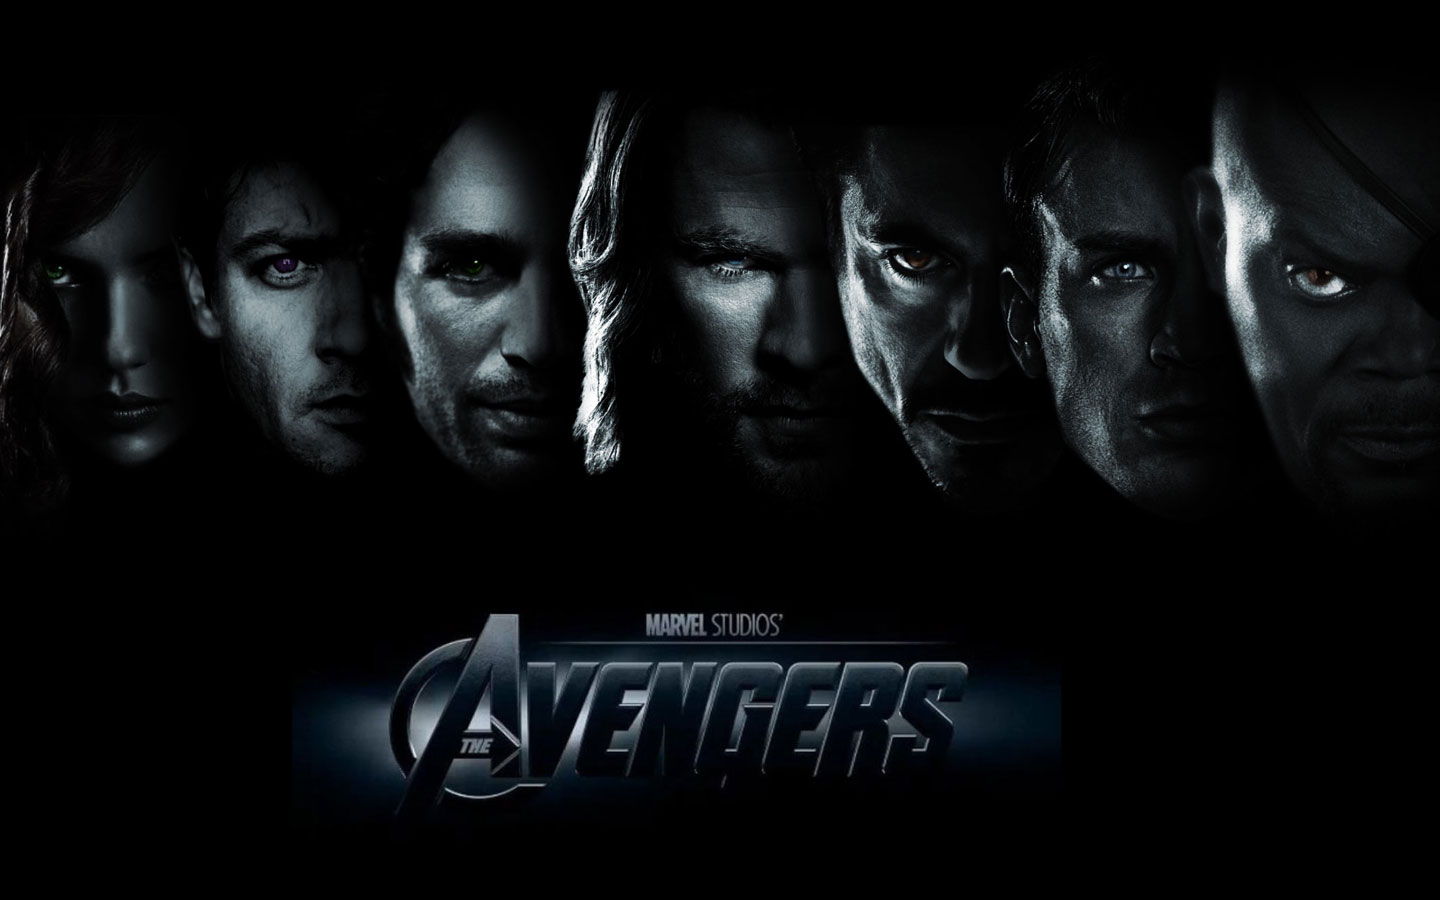 The Avengers wallpaper 1